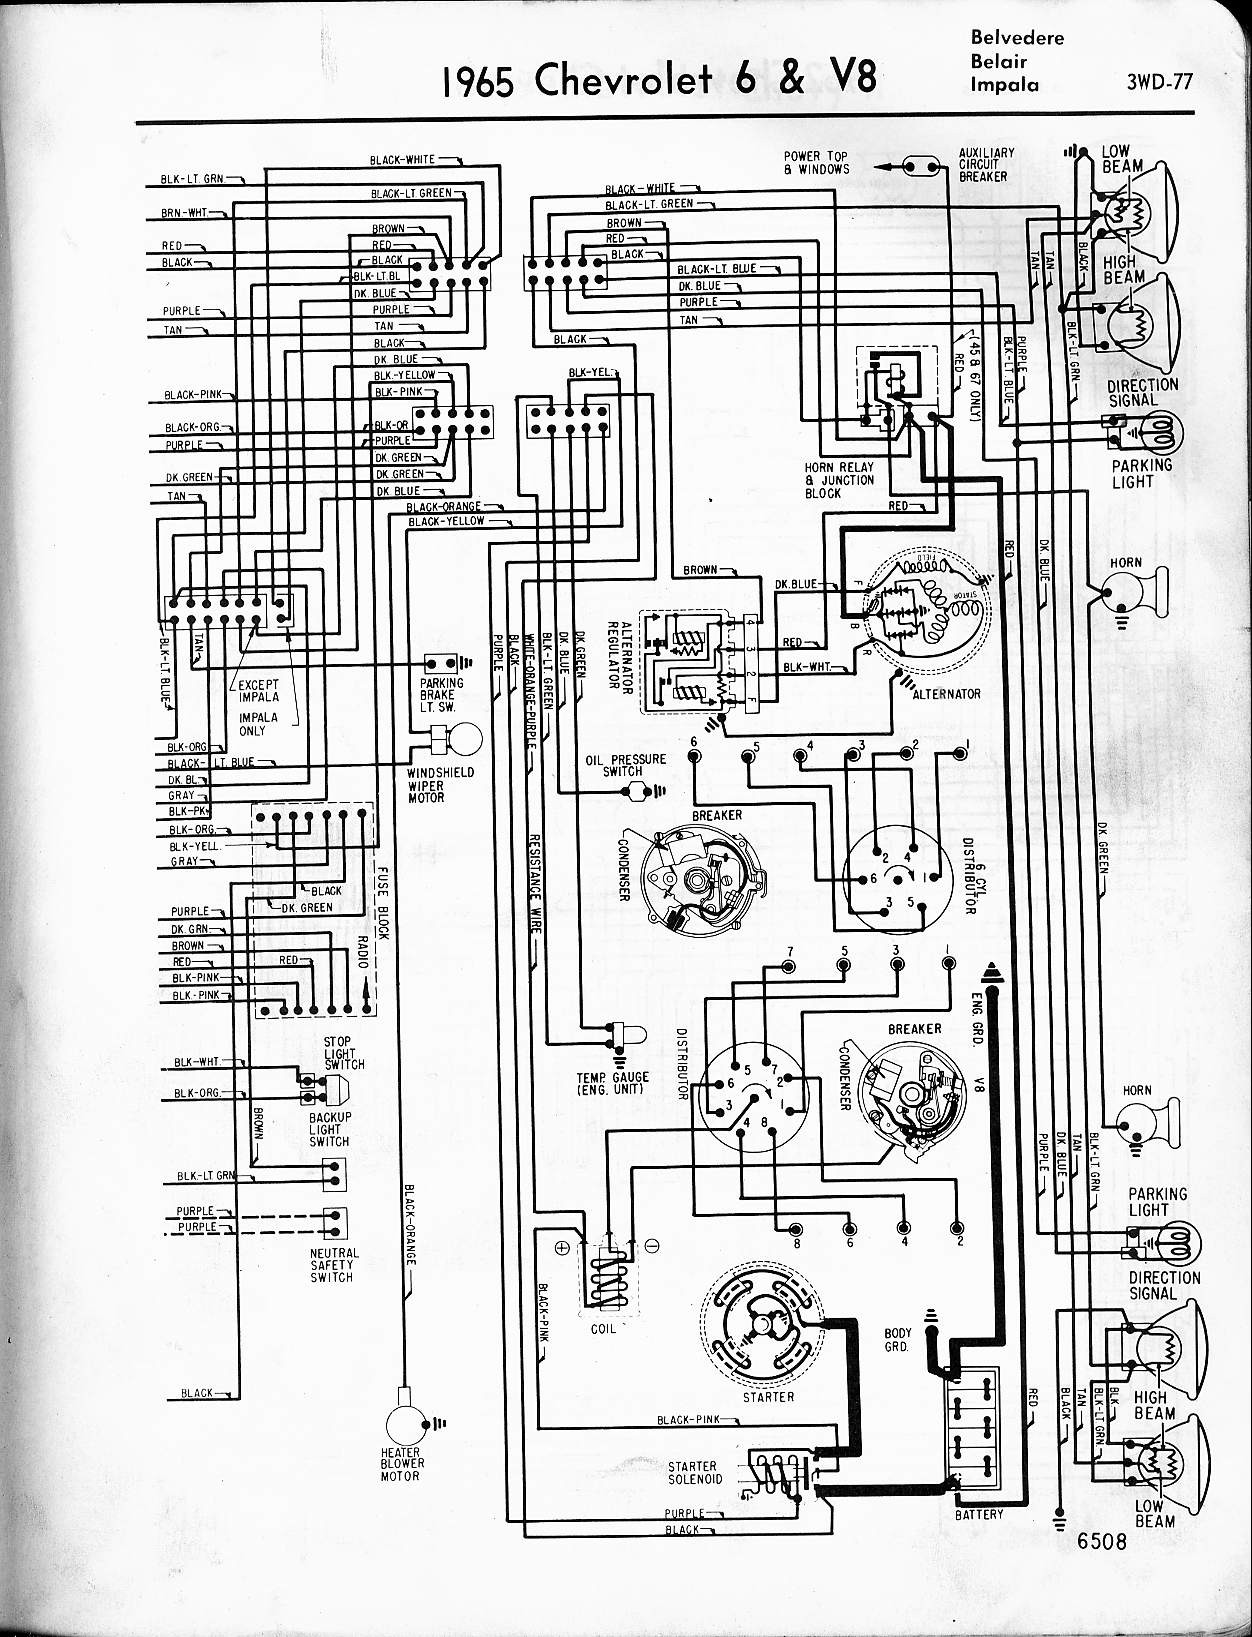 1969 chevy fuse box diagram catalogue of schemas wiring diagram for 1969 chevy truck